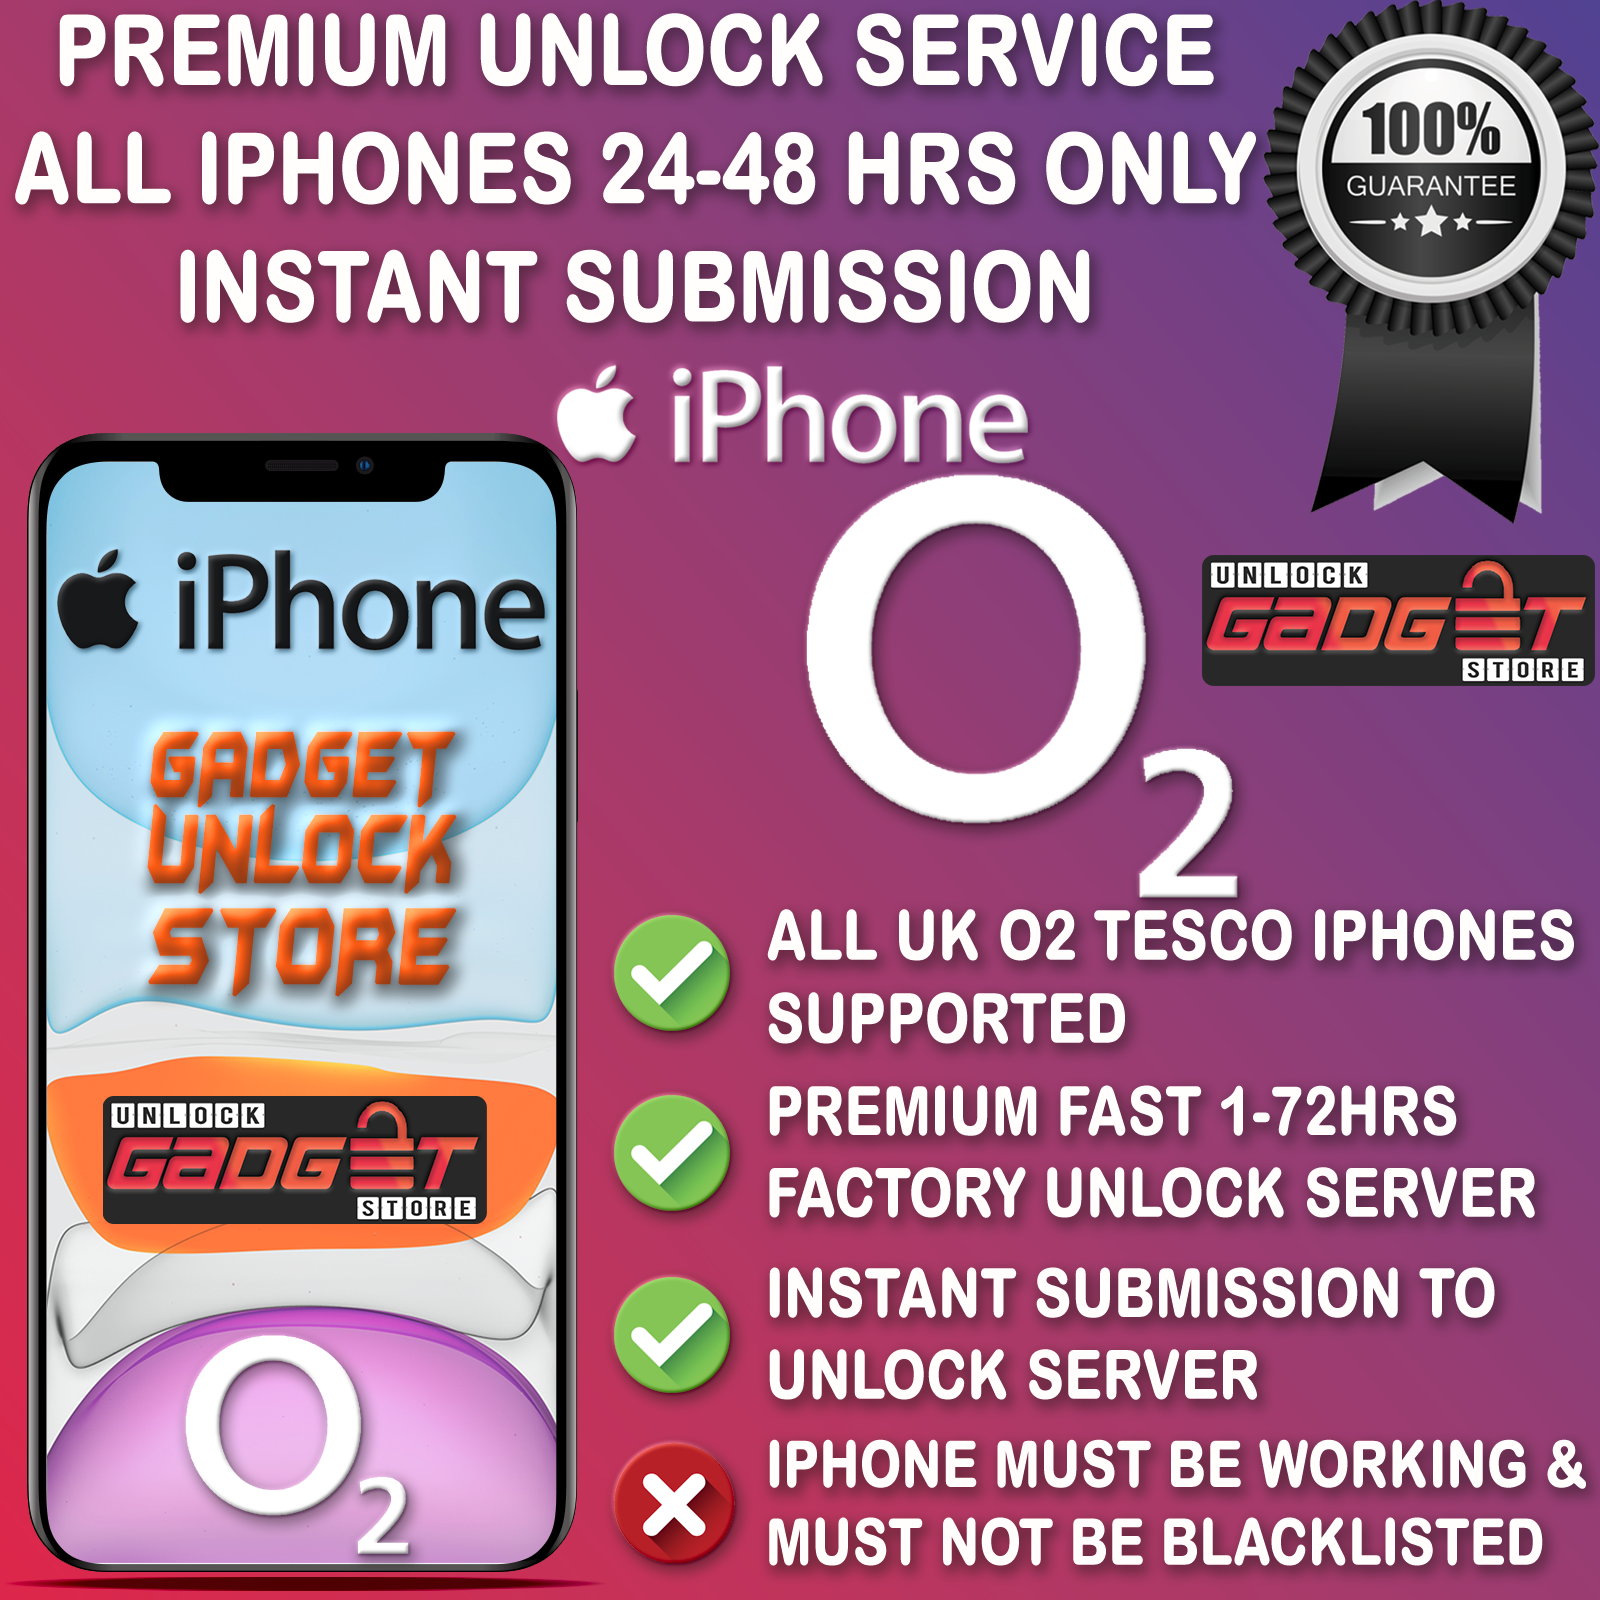 UNLOCK CODE FOR IPHONE 5 5S 5C SE 6 6S 7 8 X XR XS 11 Pro Max O2 TESCO UK UNLOCK 6